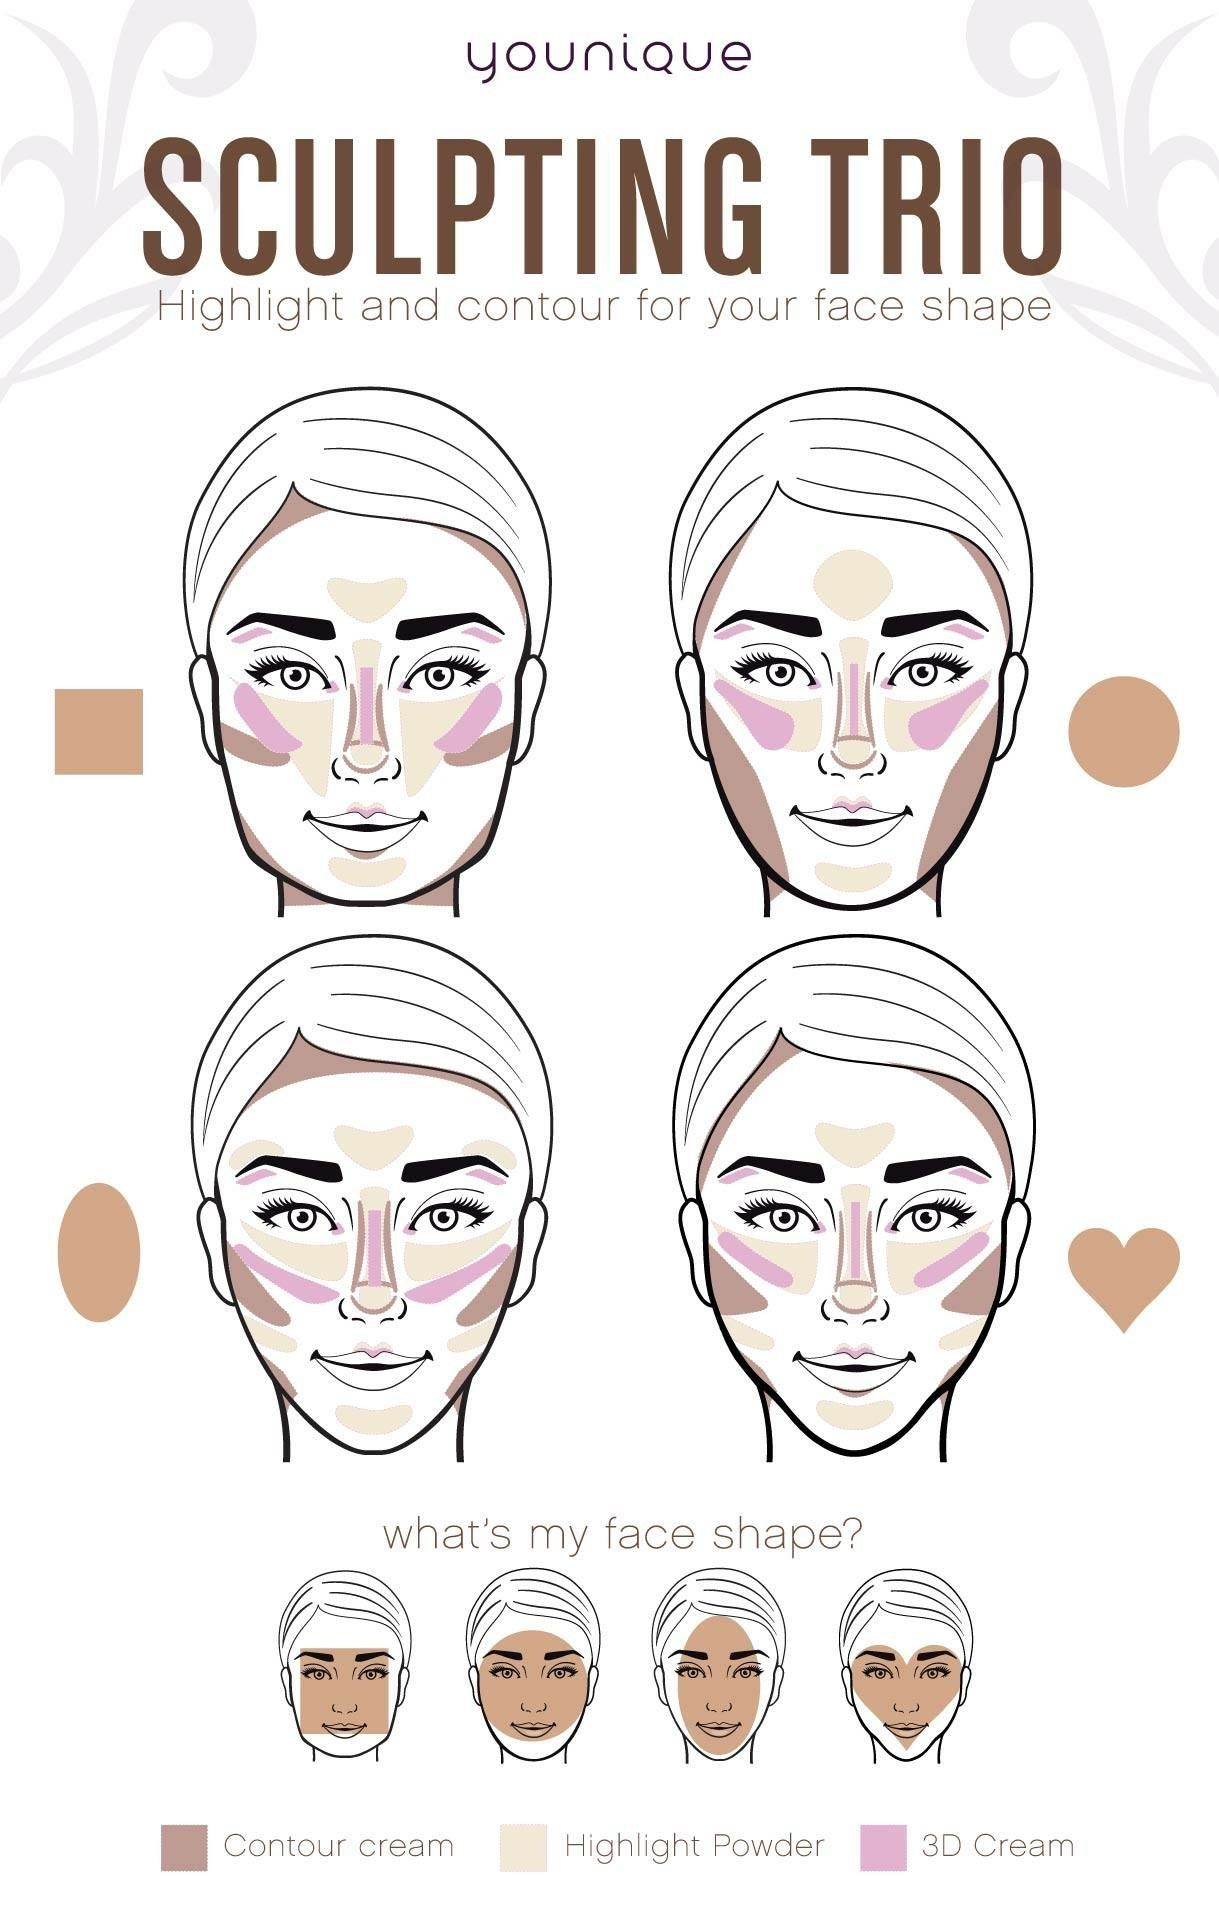 How to get a flawless face in less than 5 minutes the new how to get a flawless face in less than 5 minutes the new highlighter and contour ccuart Gallery